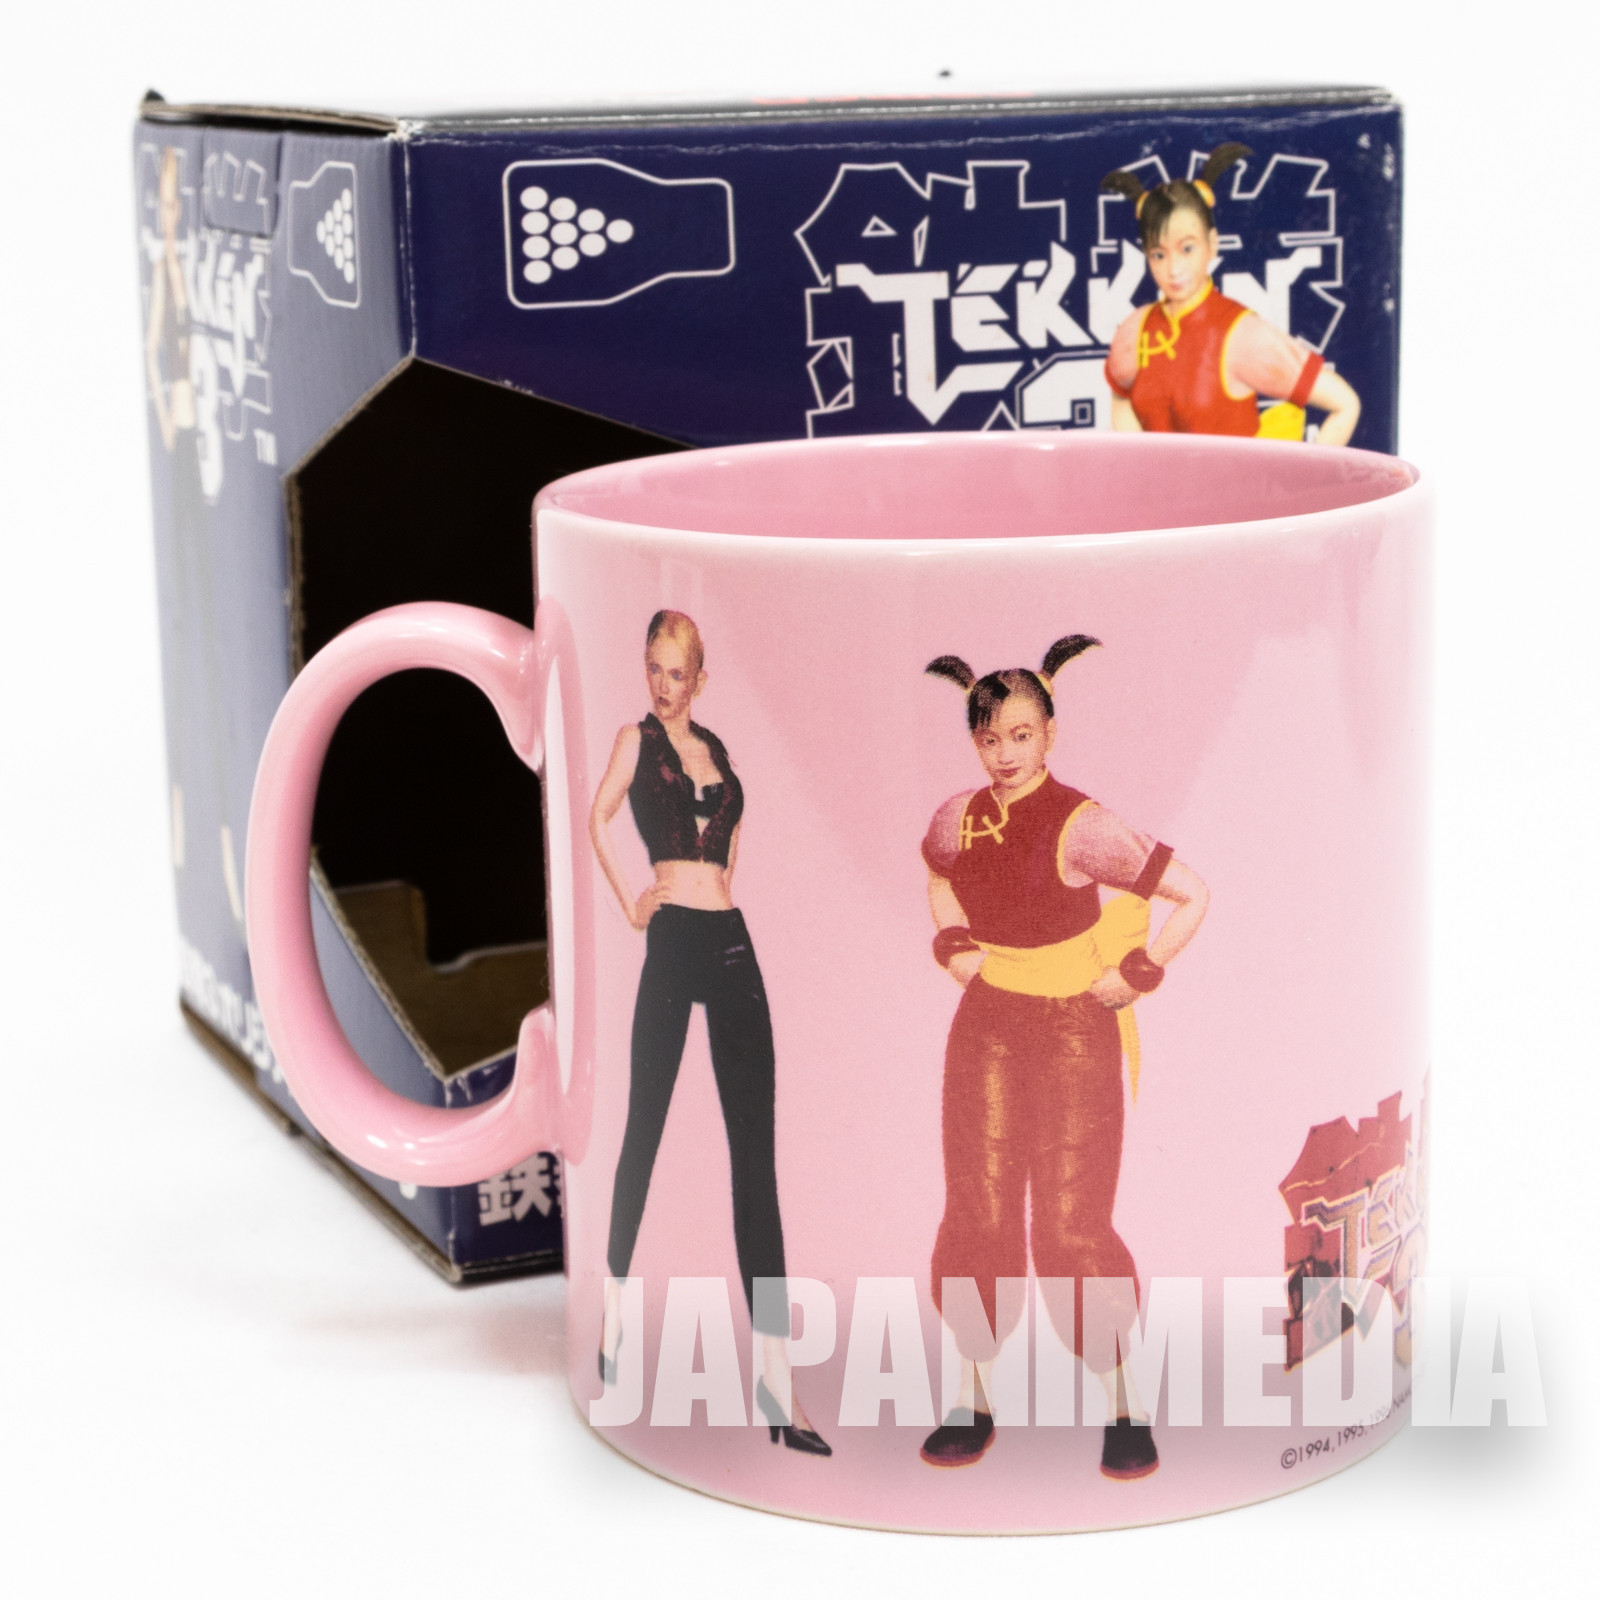 Tekken 3 Nina Williams Ling Xiaoyu Mug Namco JAPAN GAME